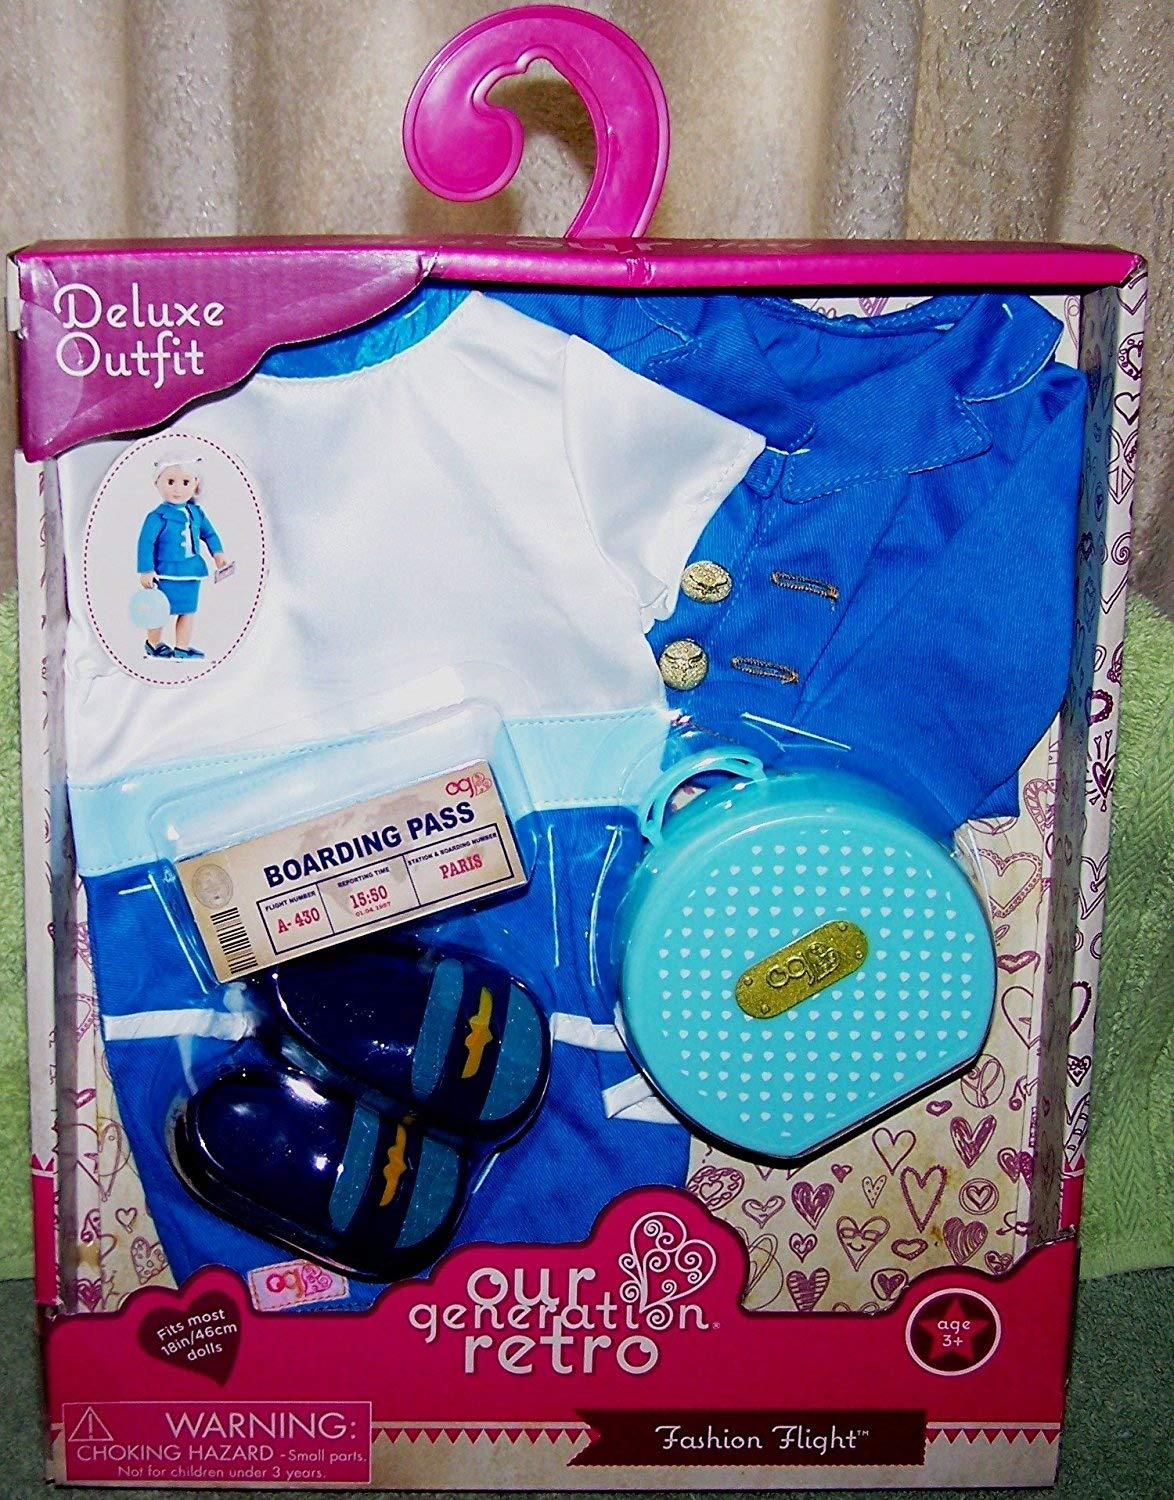 Our Generation Retro FASHION FLIGHT Deluxe Outfit New Battat